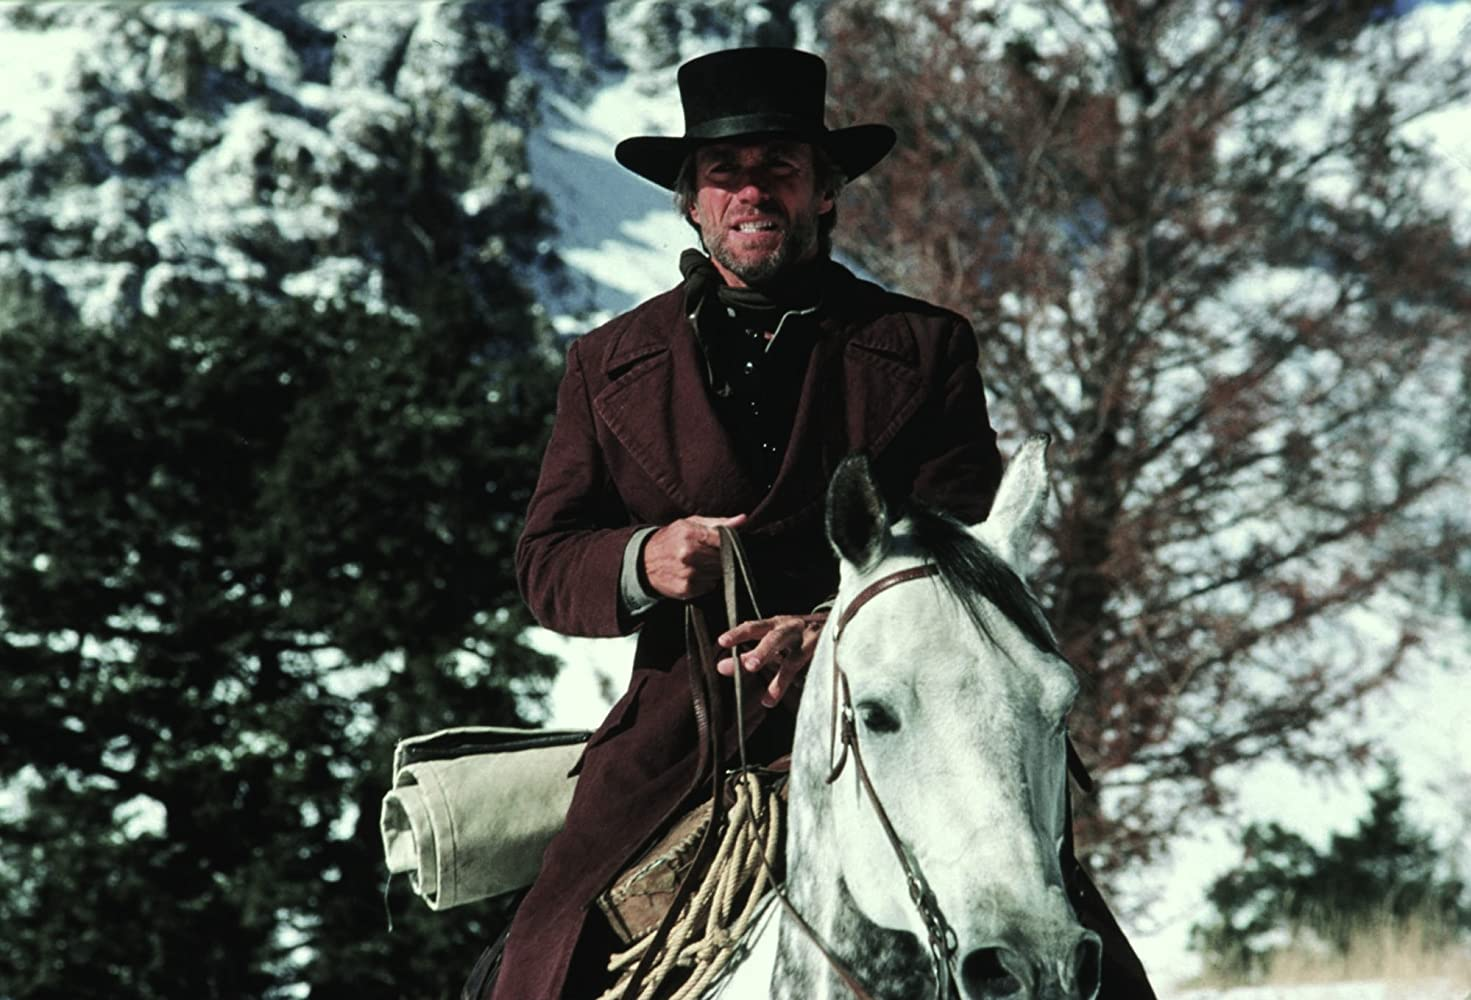 Clint Eastwood in Pale Rider (1985)